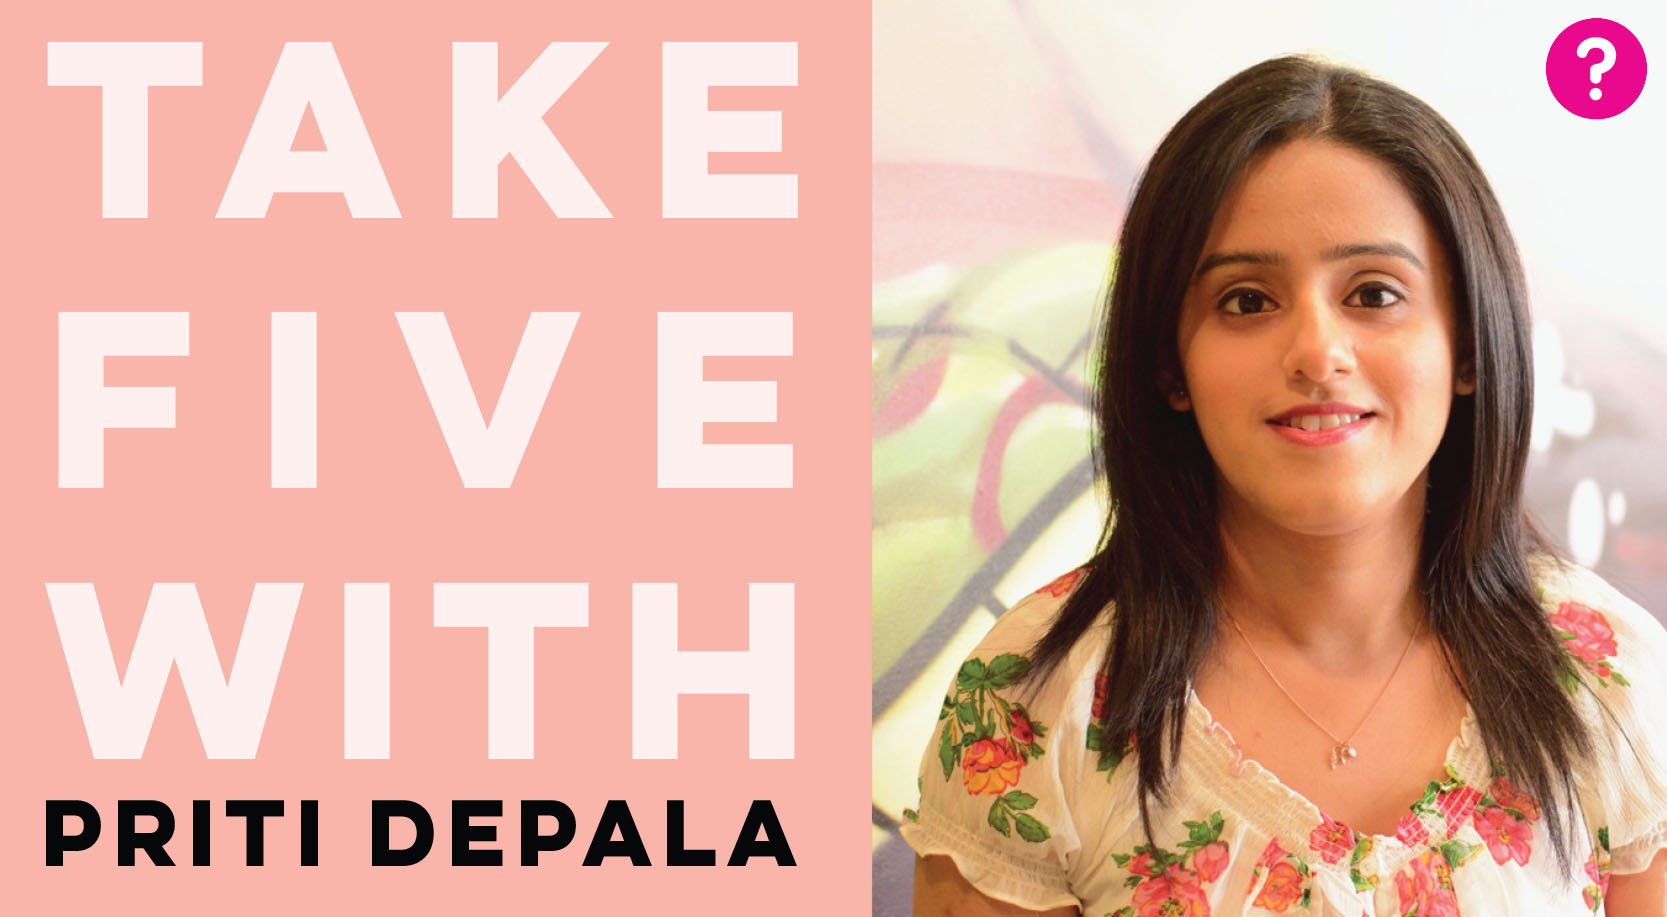 Take Five With Priti Depala - Pictured is a closeup of Priti smiling at the camera. Priti is a designer who works on projects with a positive social impact and is passionate about neurodiversity.